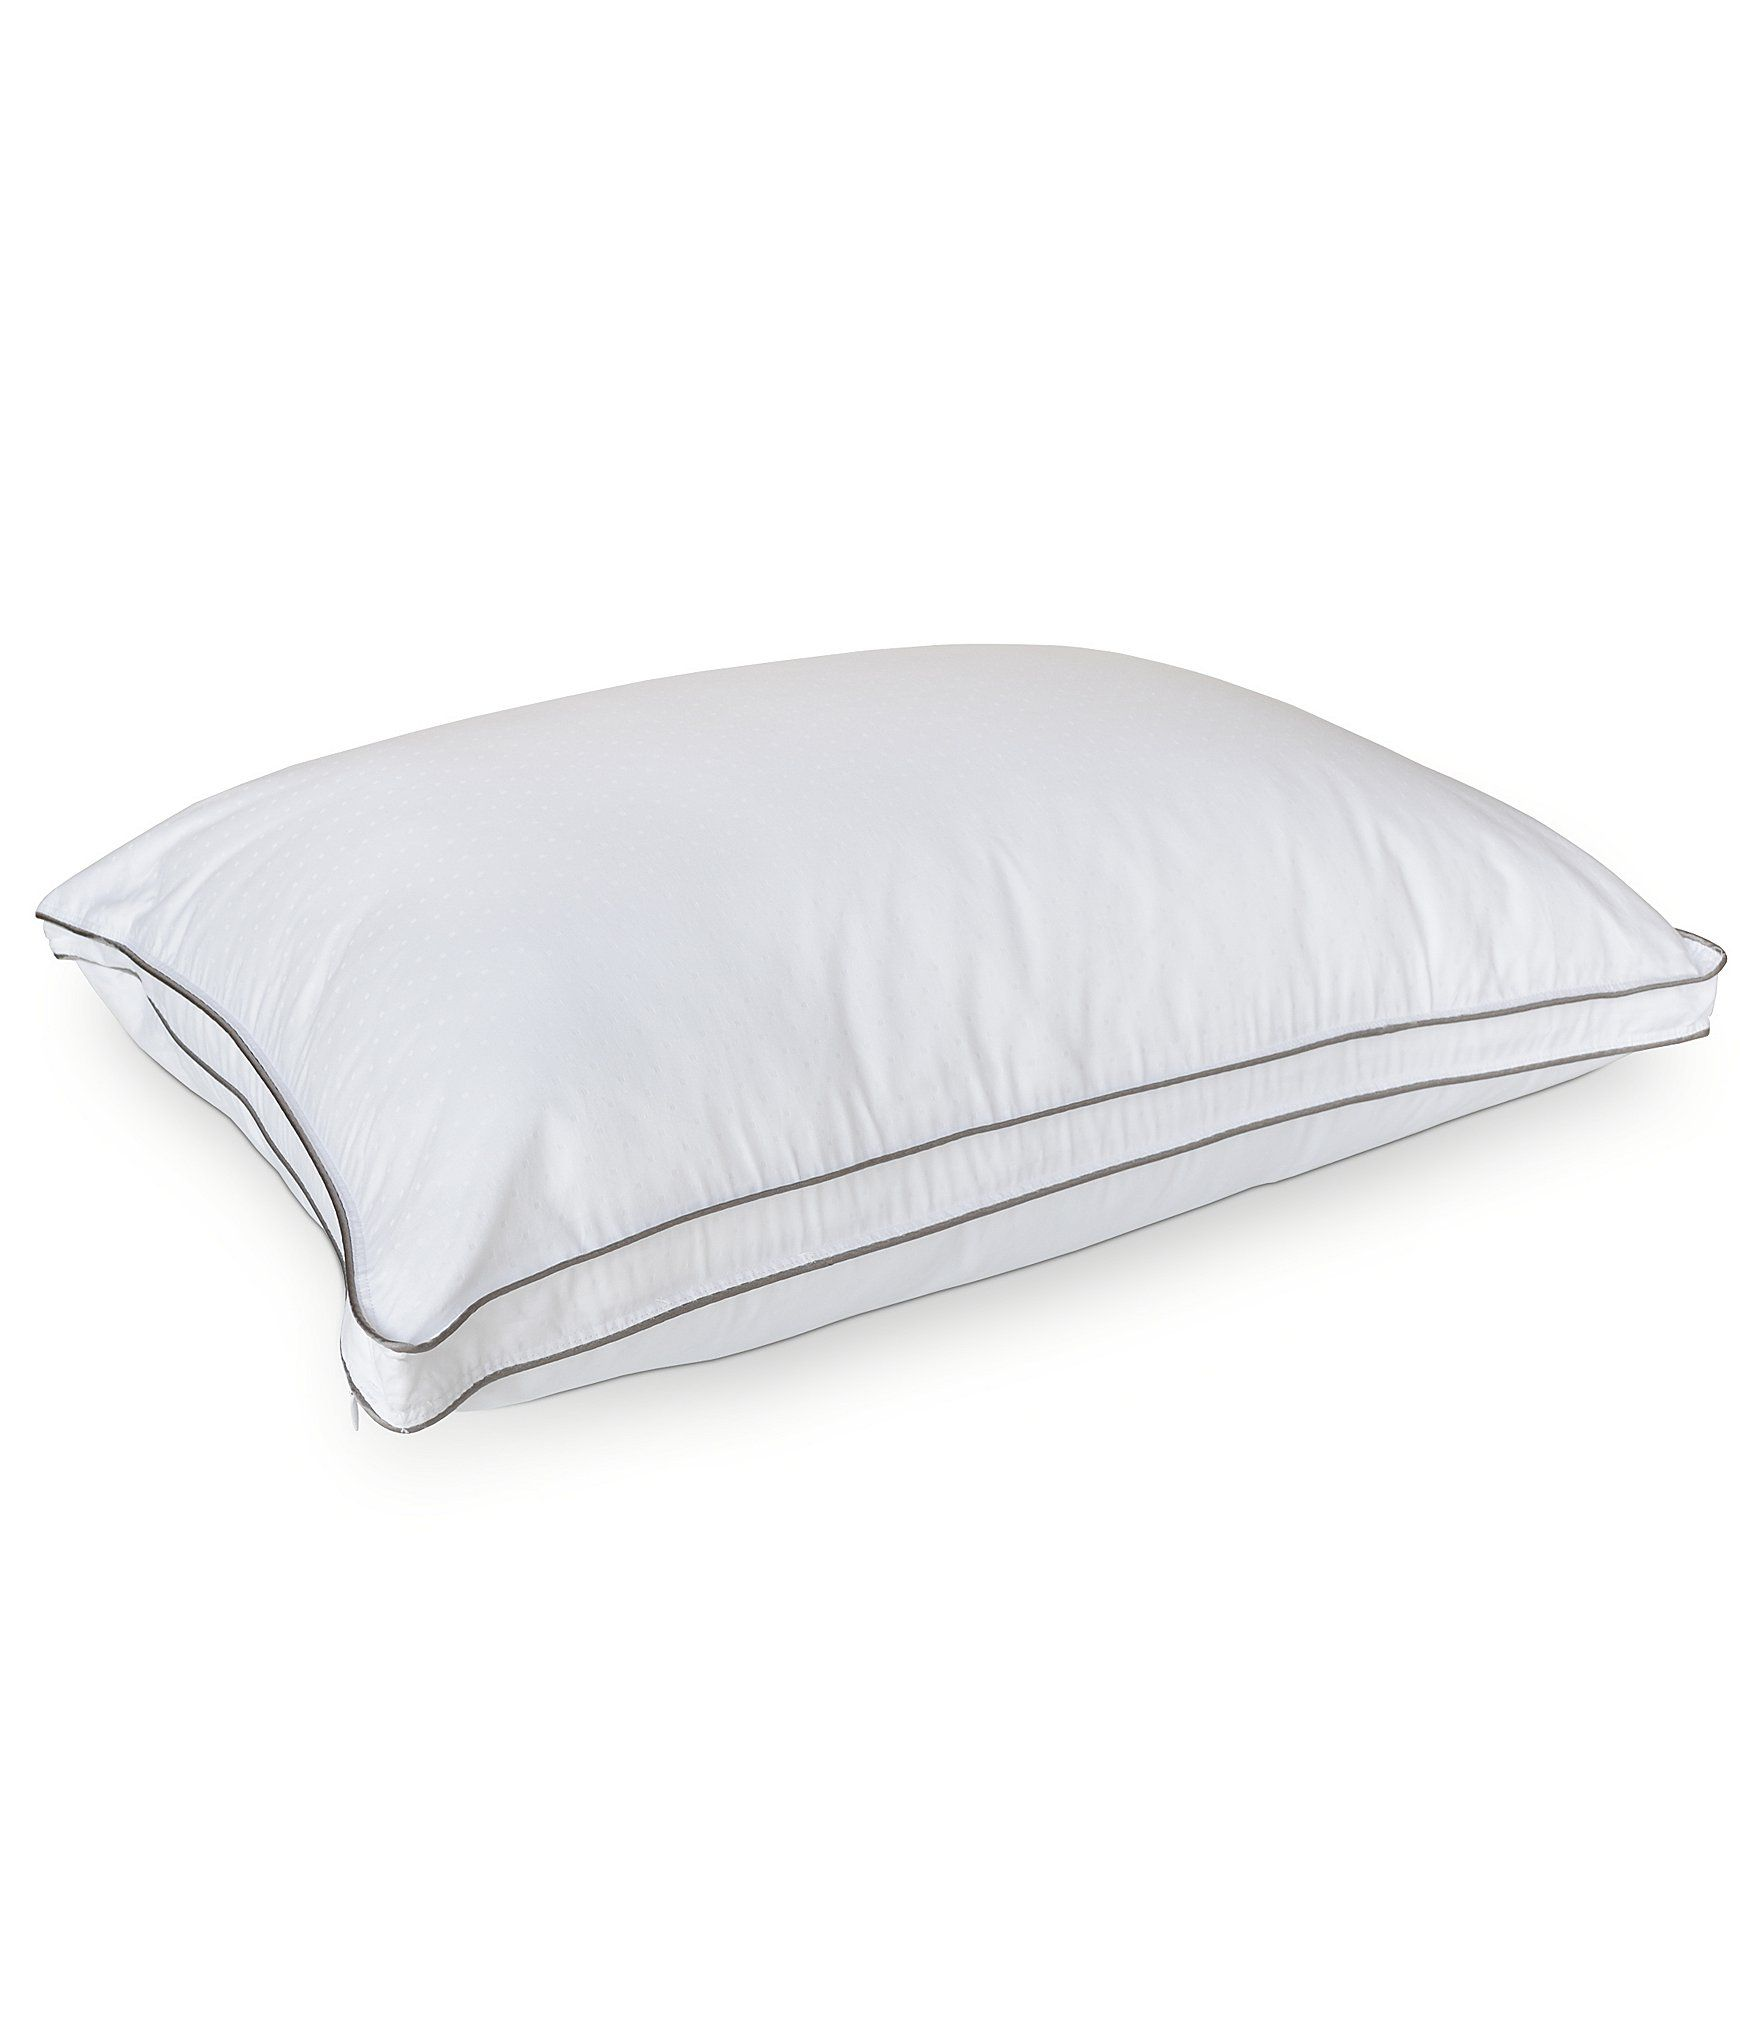 Southern Living Luxury Down Alternative Medium Density Pillow In